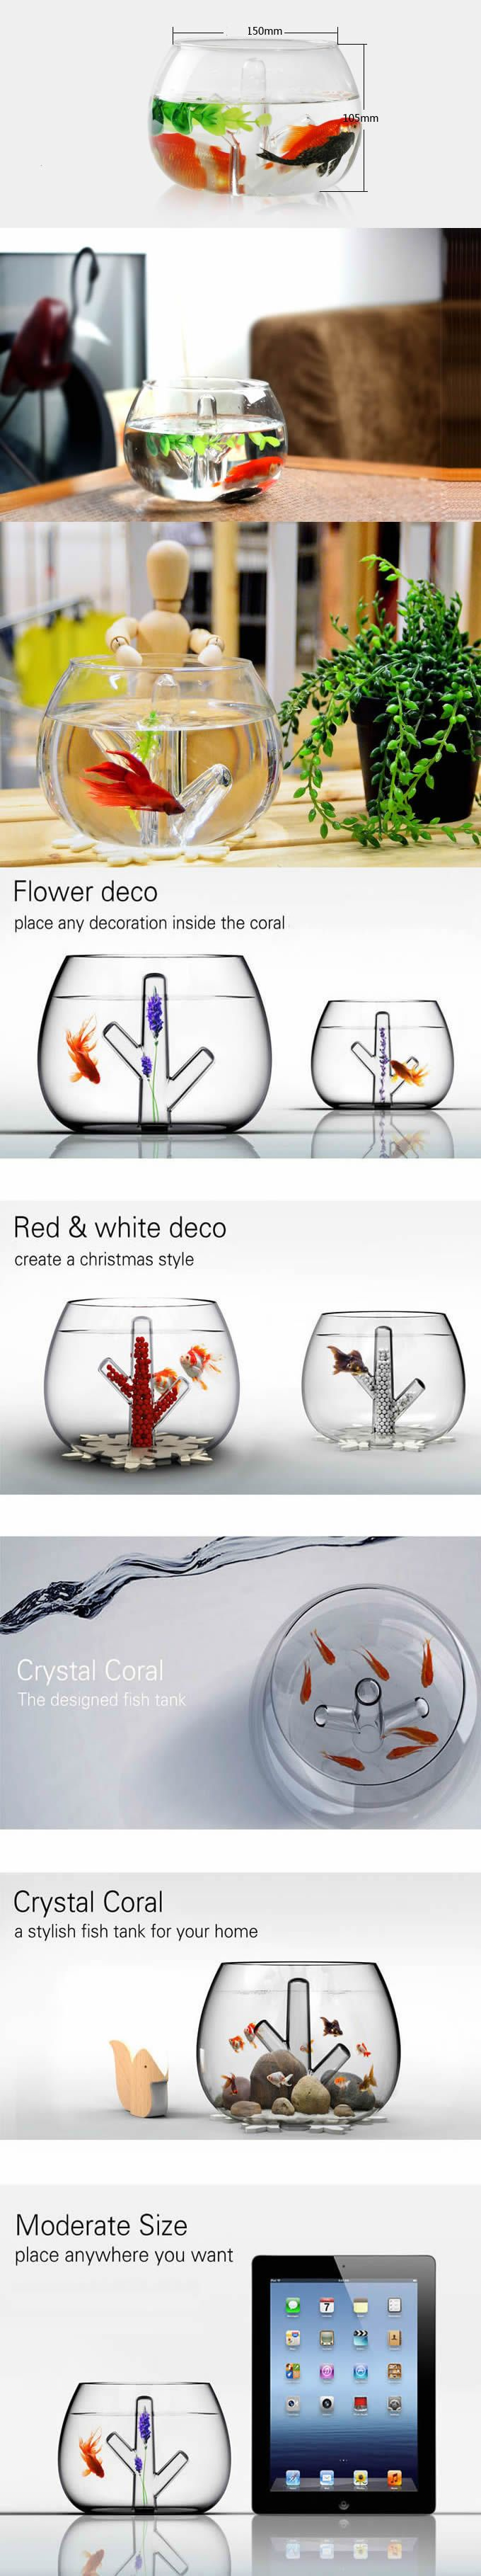 Fish tank in home place - Glass Fish Tank